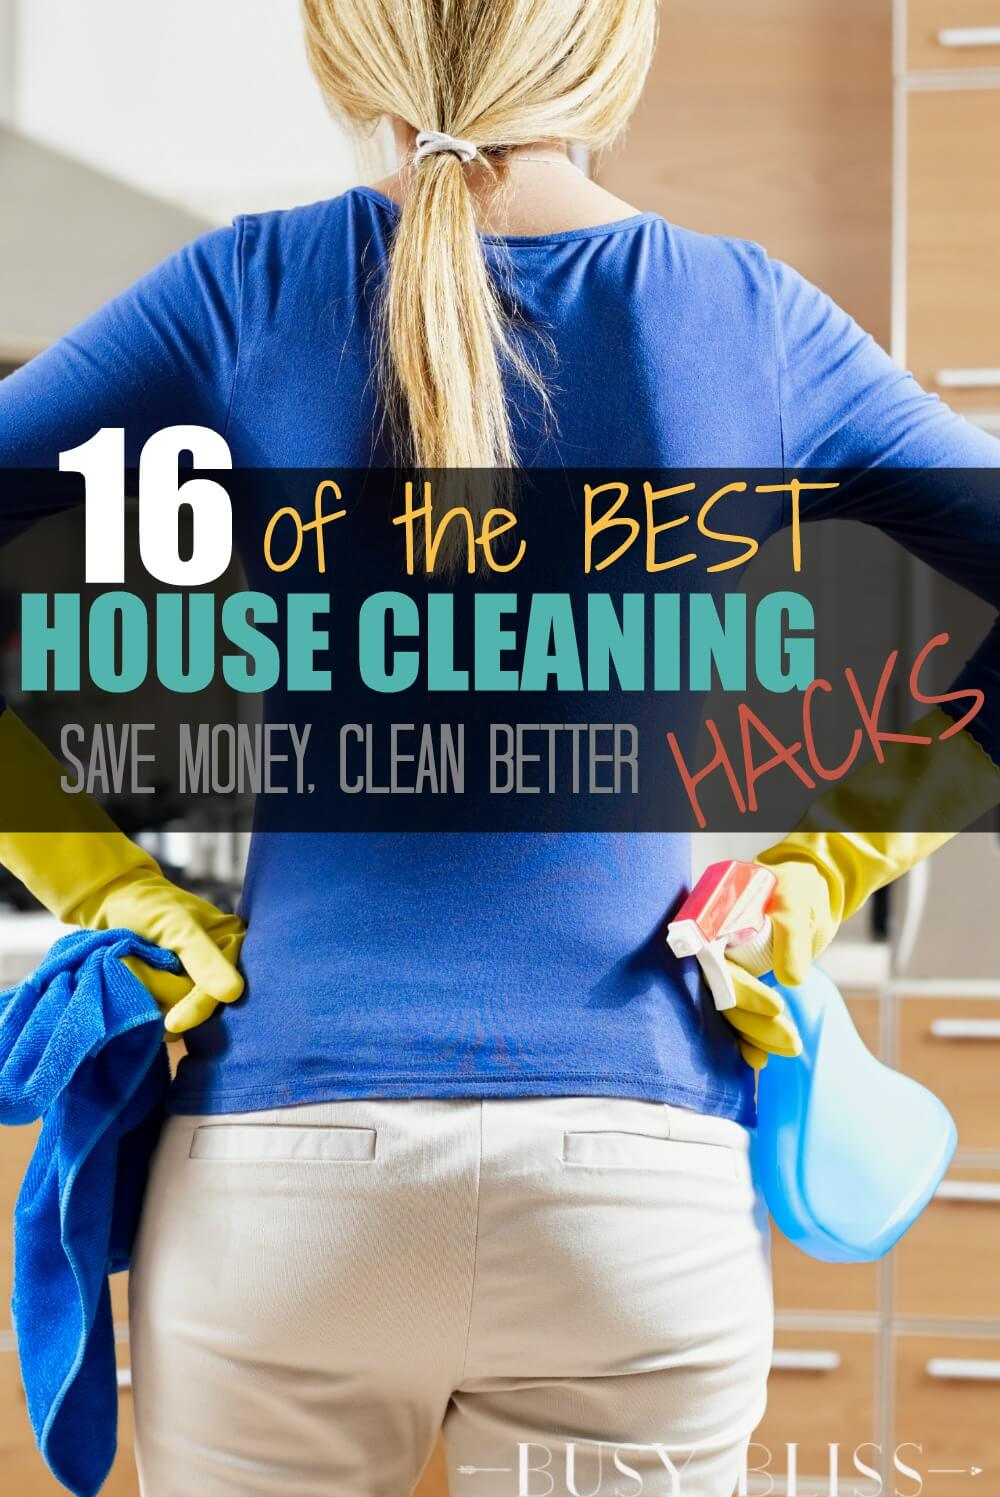 From homemade cleaners to easy cleaning tips, these house cleaning hacks will save you time, money, and quite possibly your sanity.